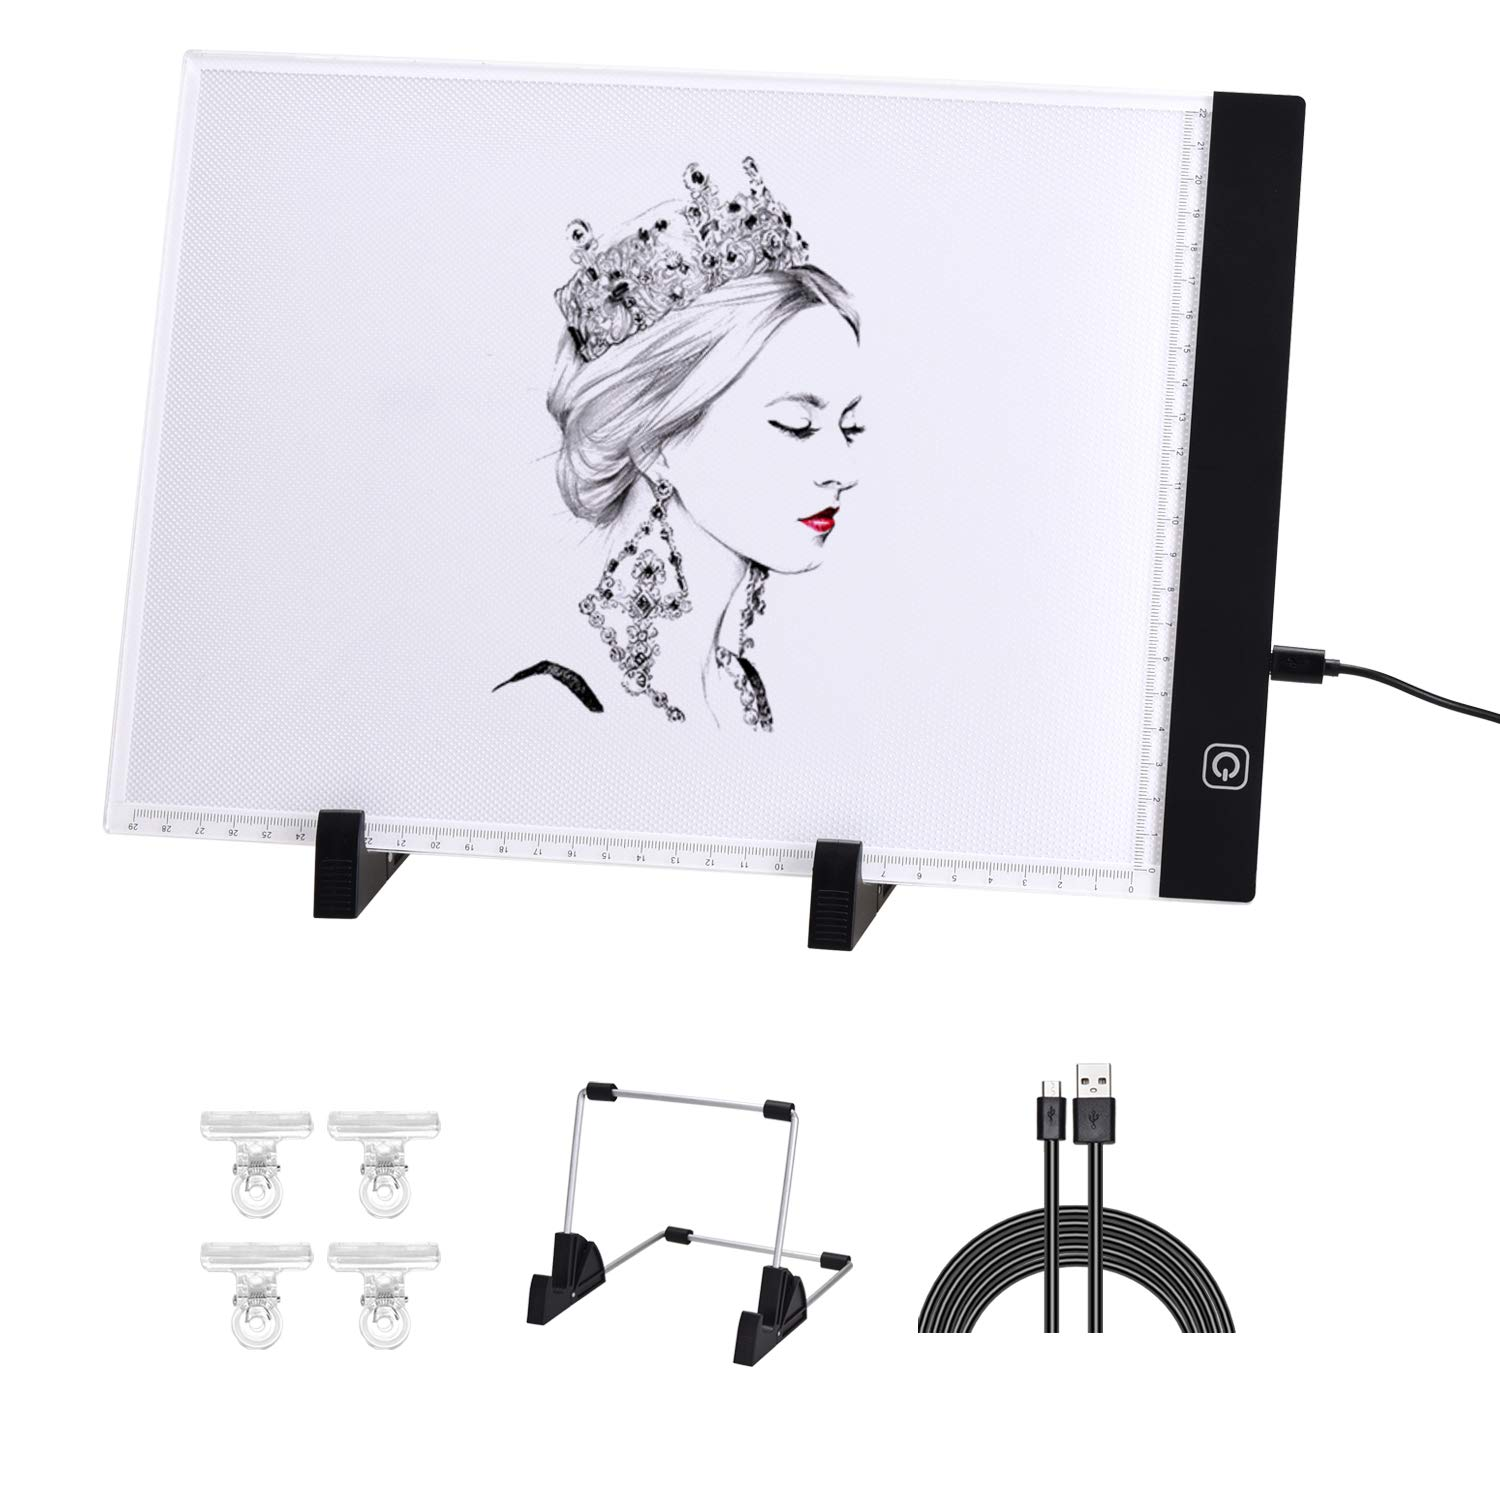 [3 in 1] Light Box for Tracing with Detachable Stand & Clips, Light up Tracing Pad for Diamond Painting, Water Color Paper, Slim Fabric by LinkBro